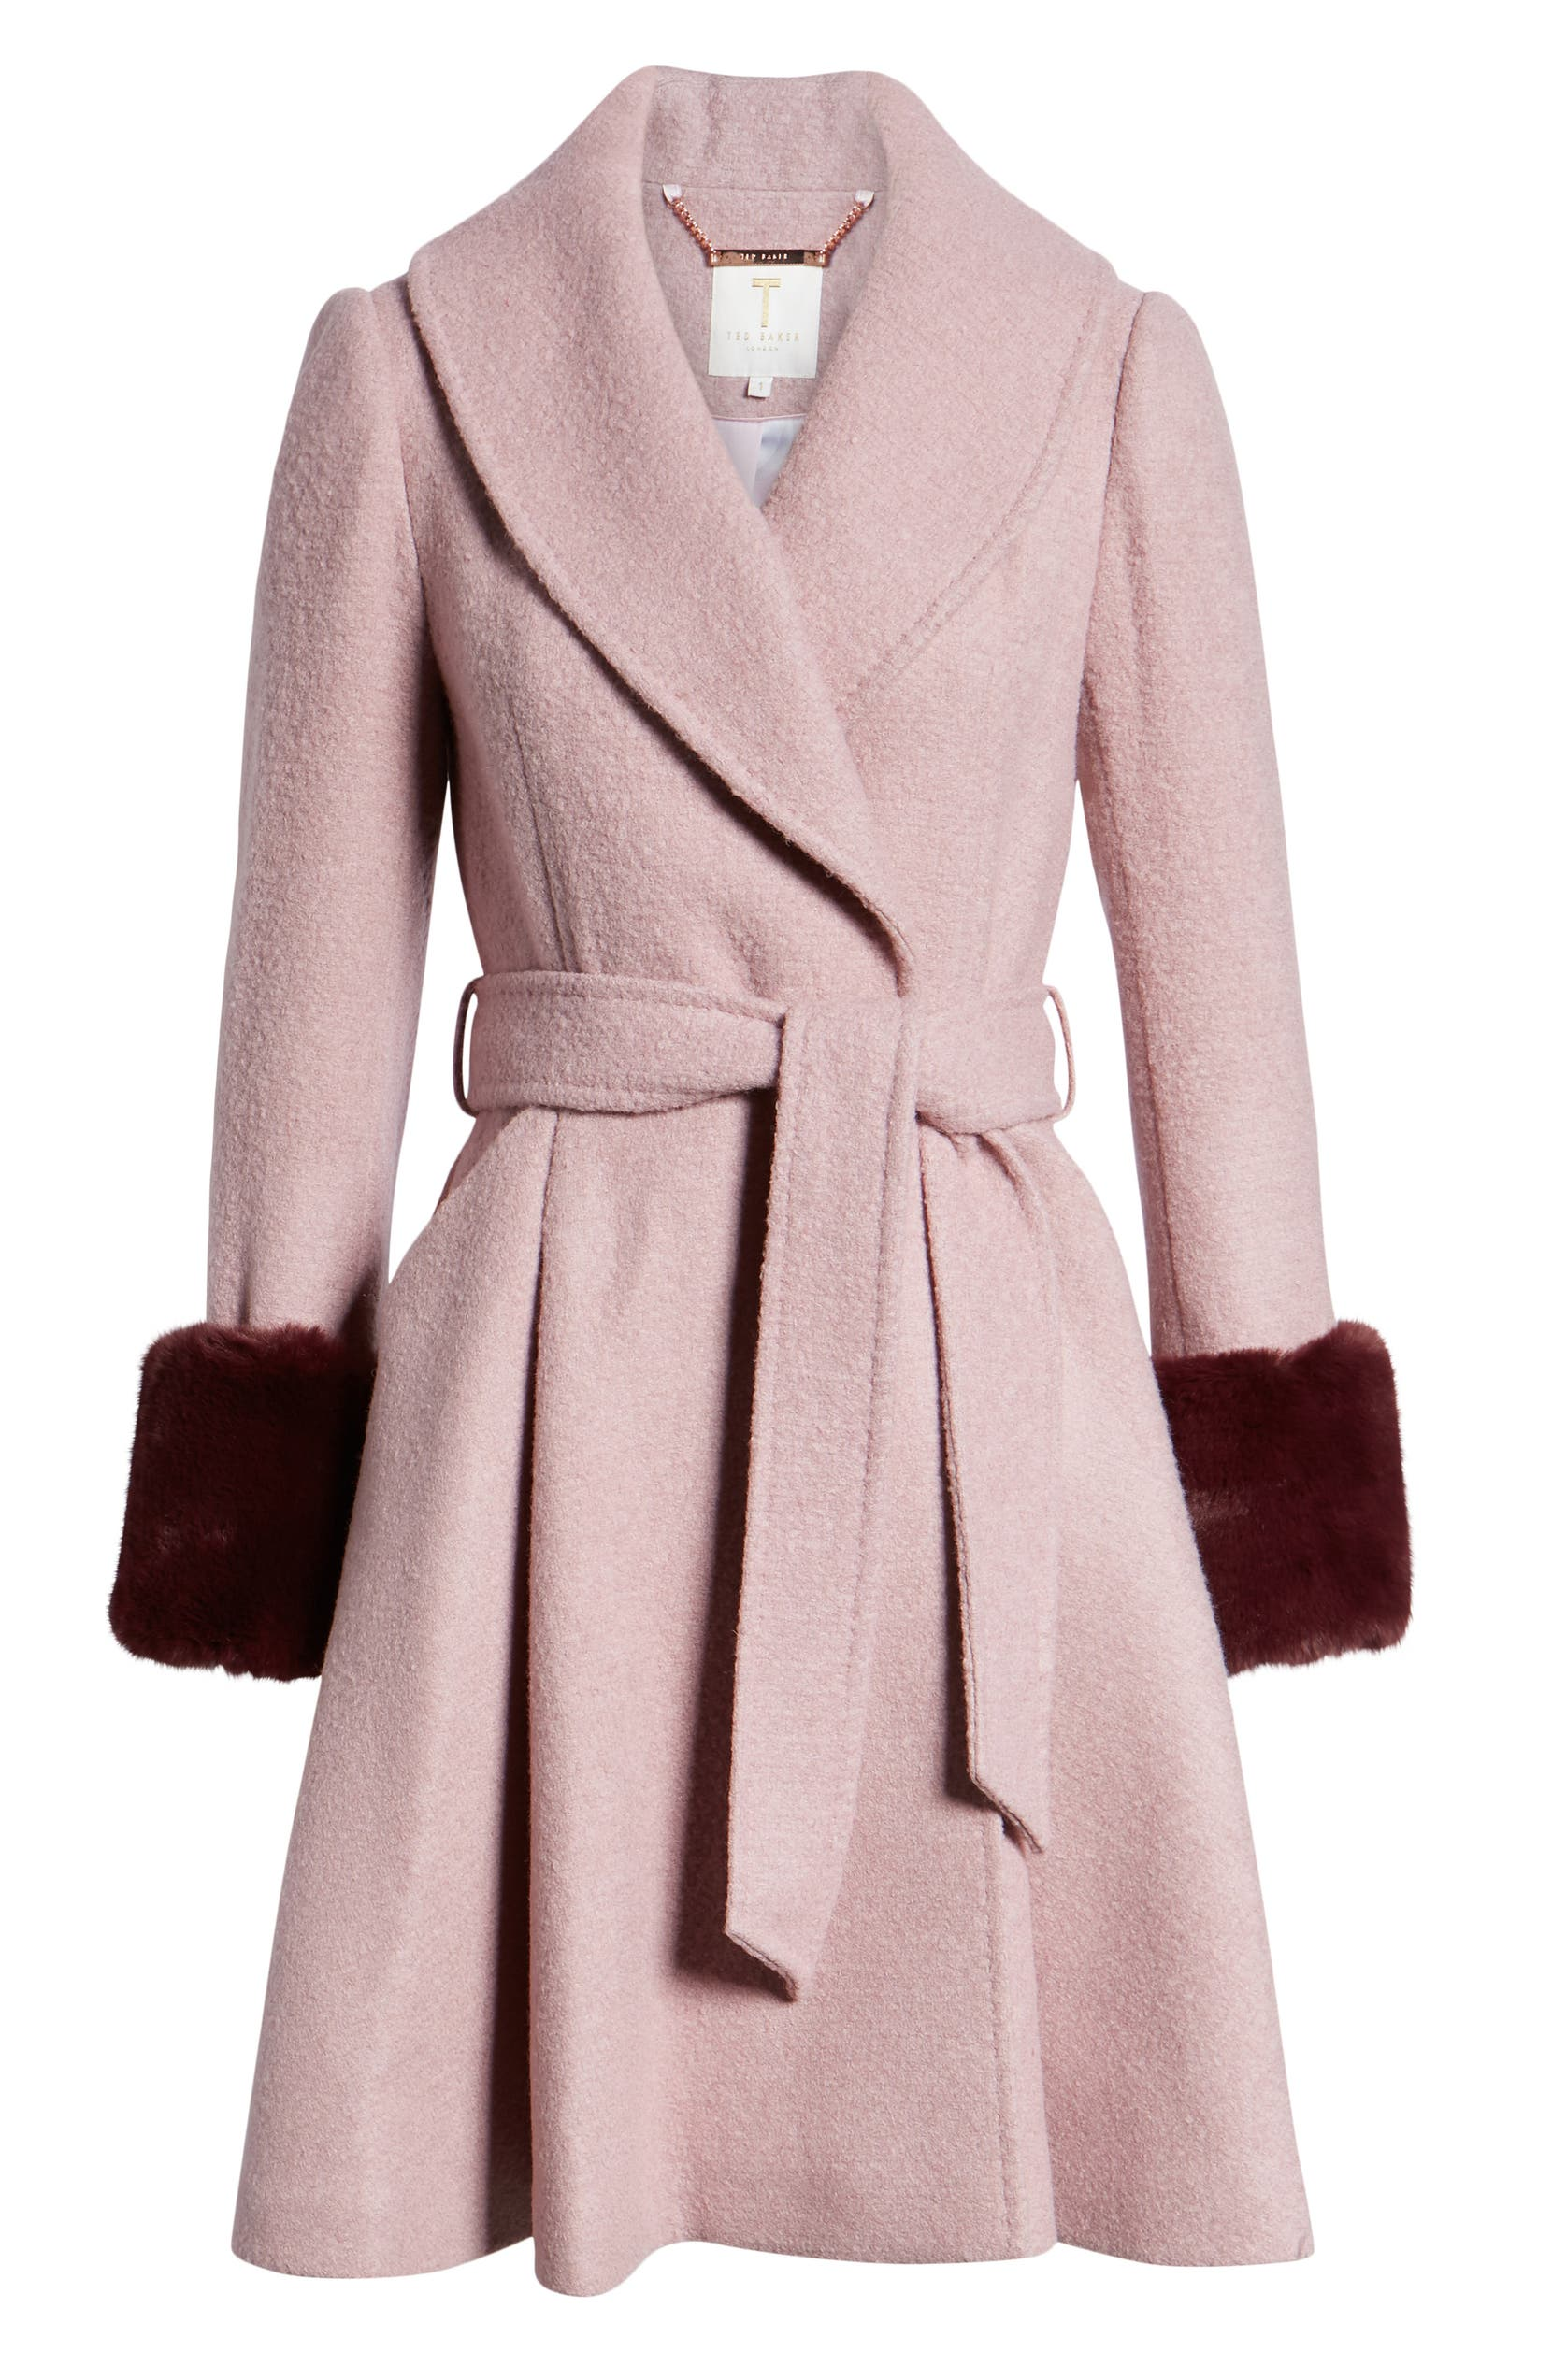 74c5df51ca40 Ted Baker London Faux Fur Cuff Skirted Coat